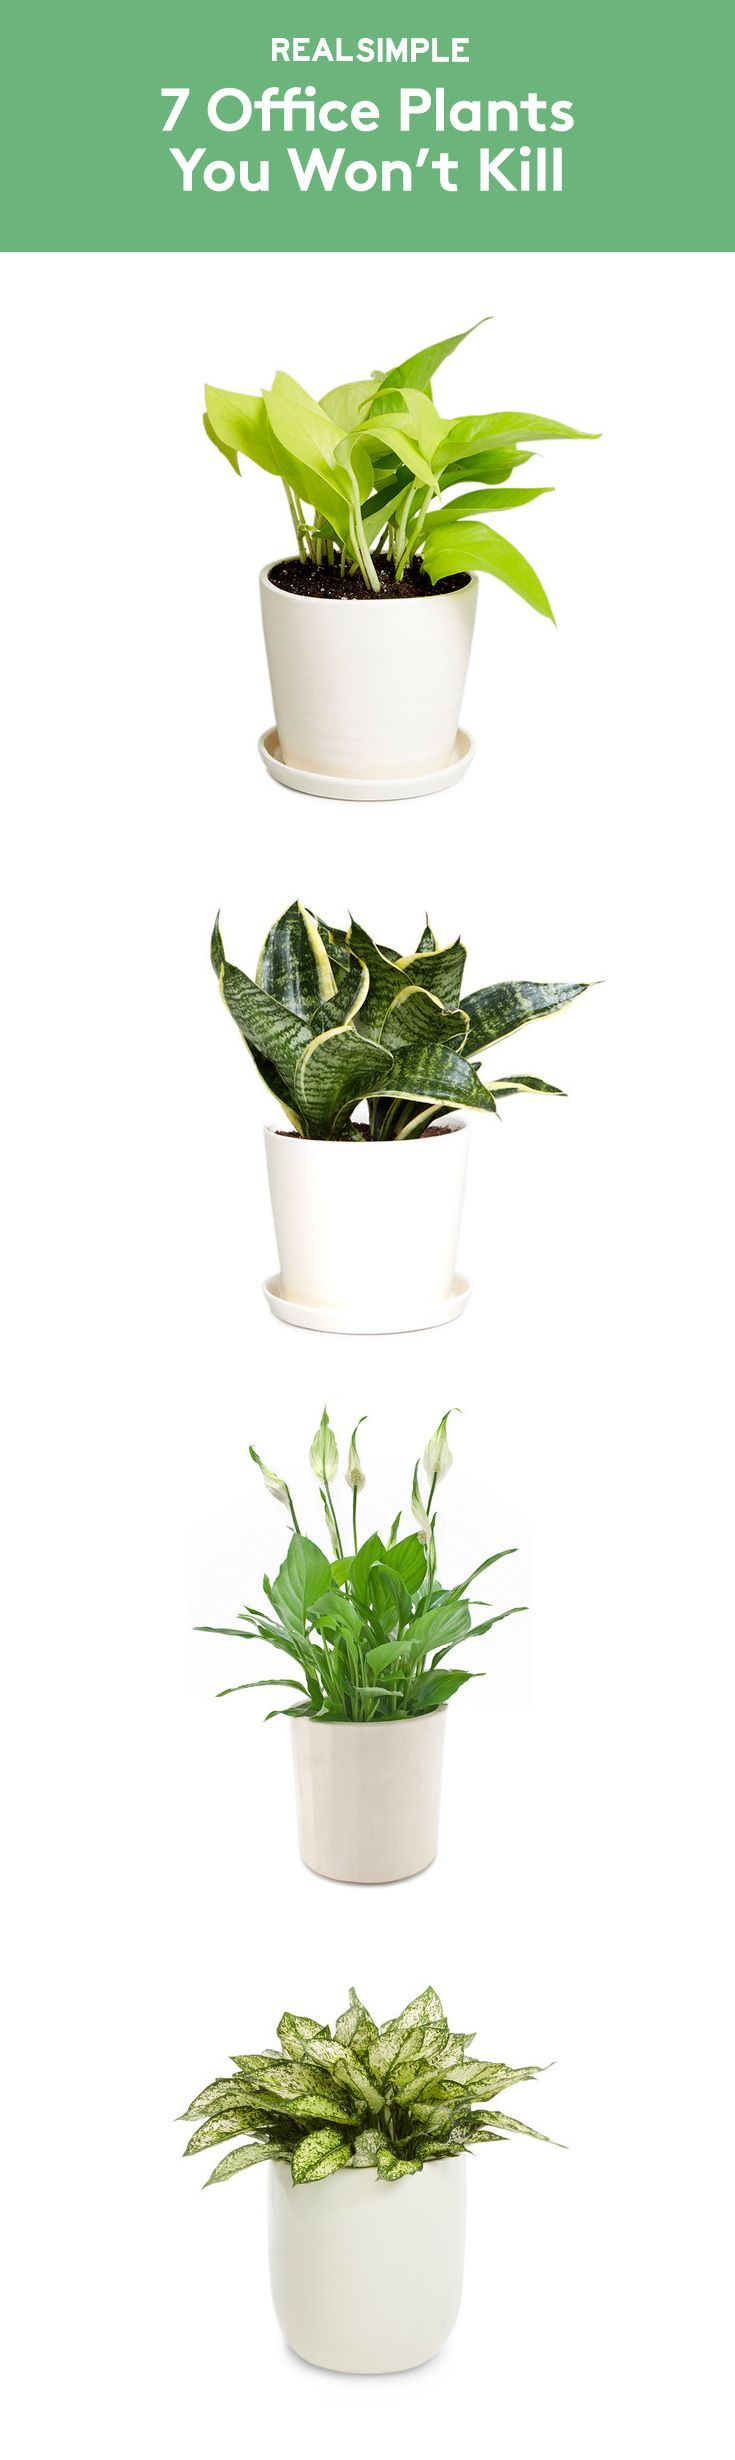 Best Office Desk Plants - Luxury Living Room Furniture Sets Check more at http://www.gameintown.com/best-office-desk-plants/